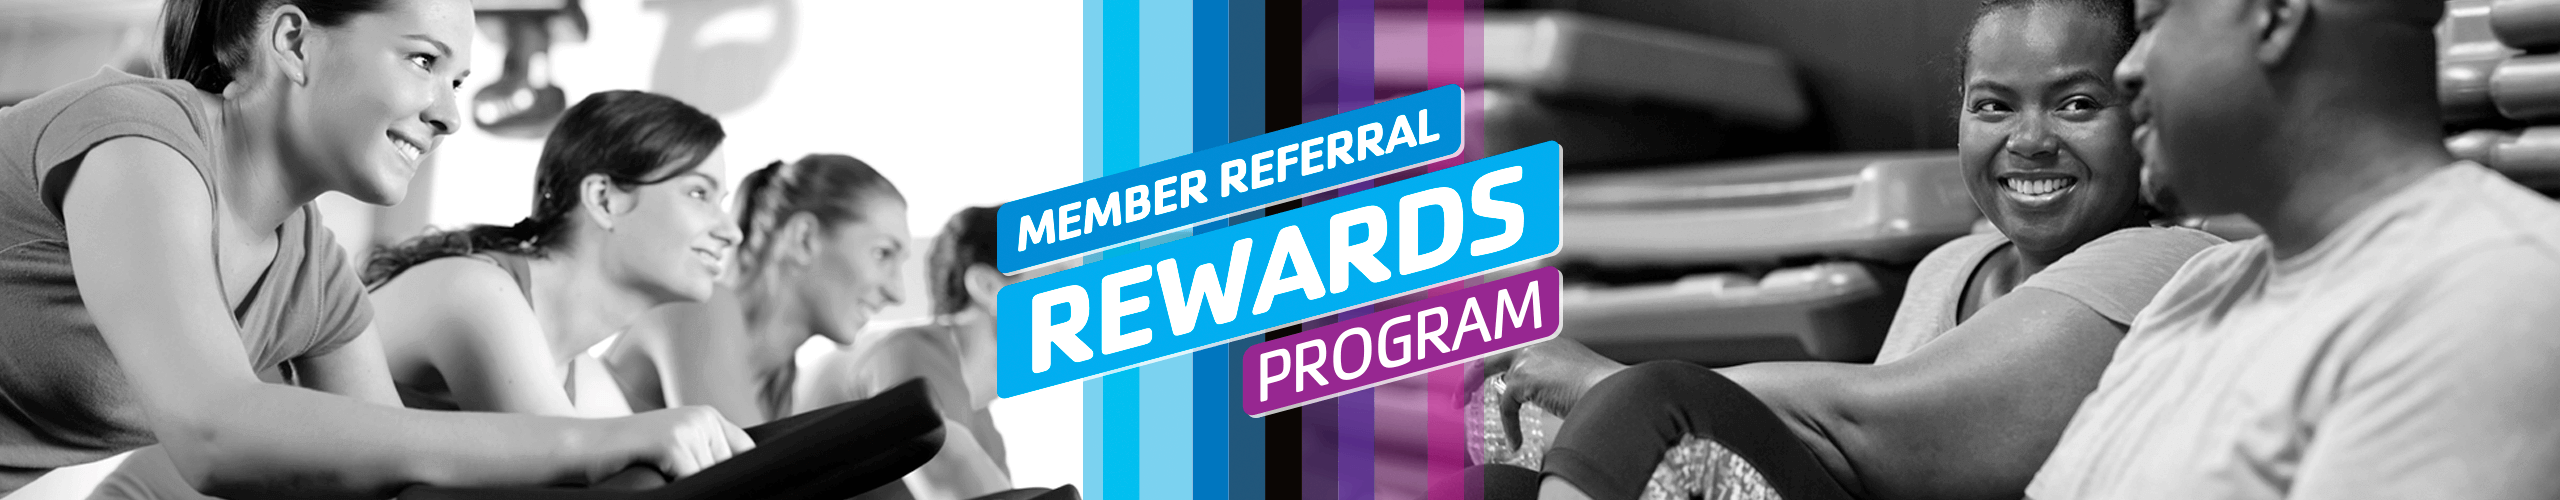 2019_YMCA_Member_Referral_Header